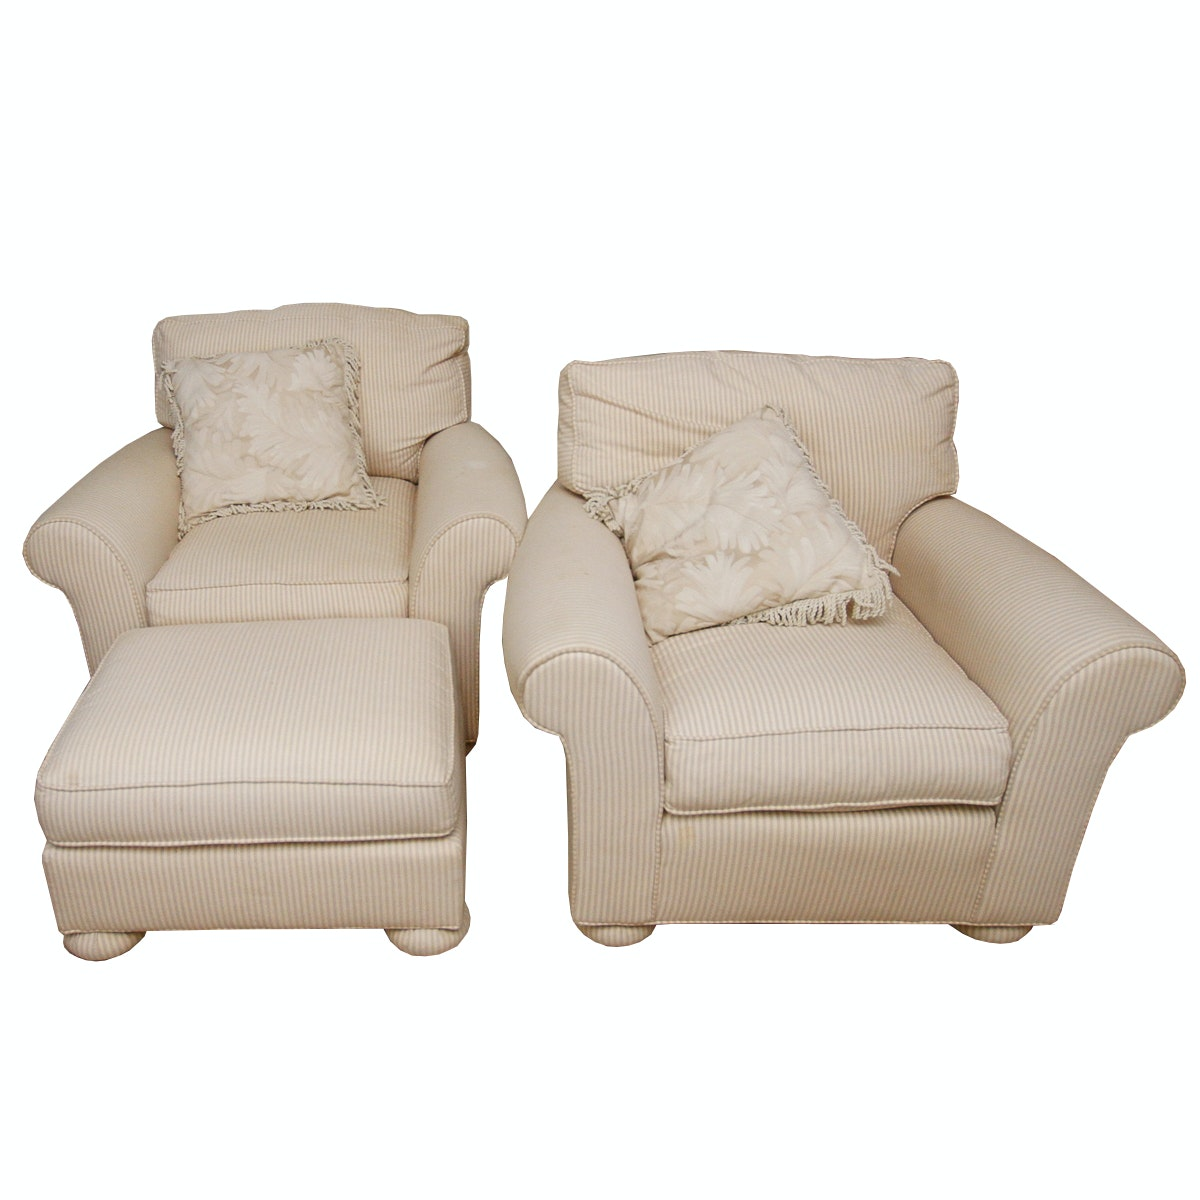 Pair of Club Chairs and Ottoman by Decoy